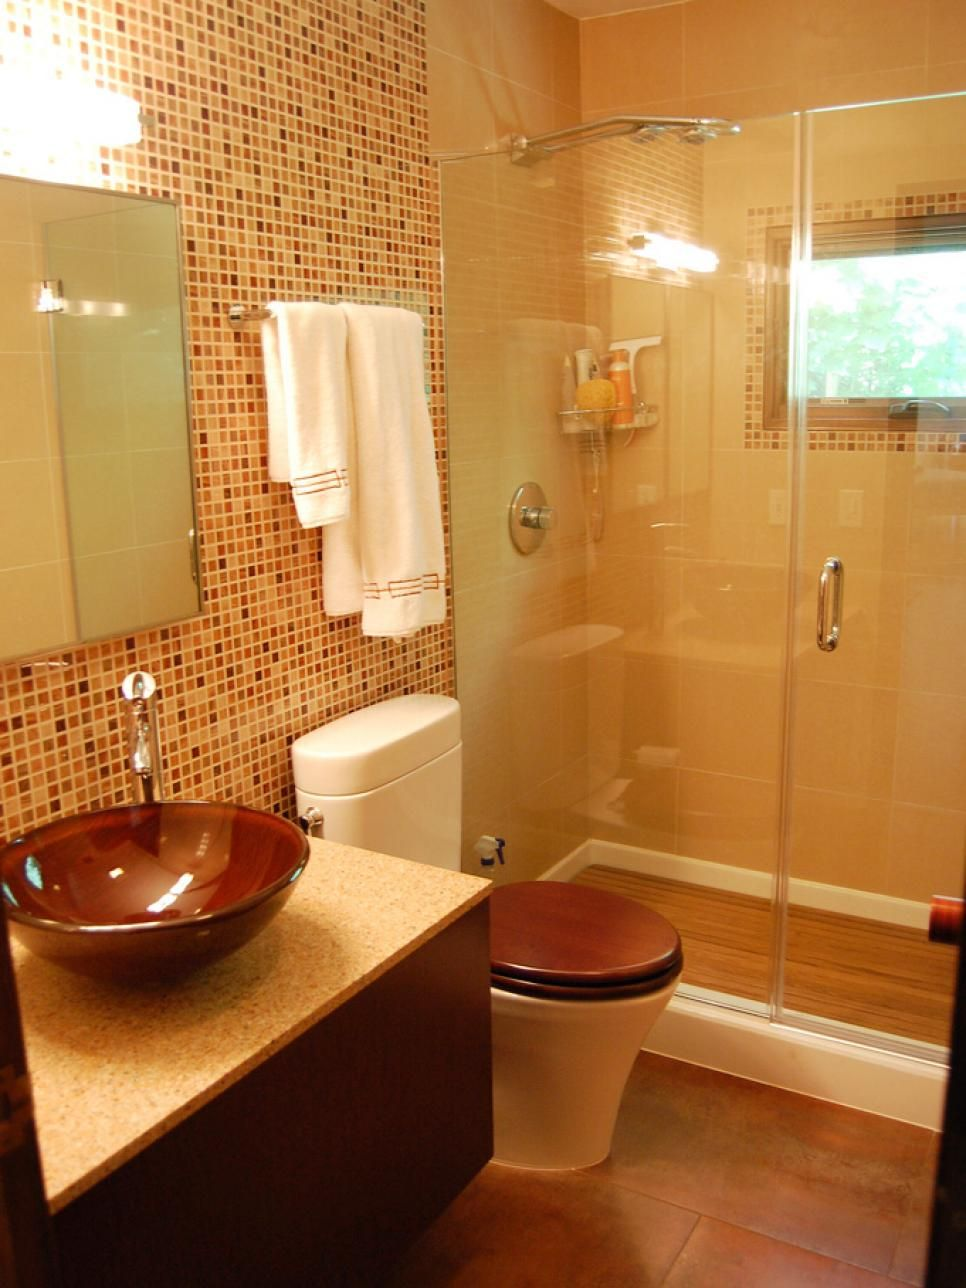 Hgtv rate my space bathrooms - Focus On Modern Design Sleek Decorating Ideas From Rate My Space